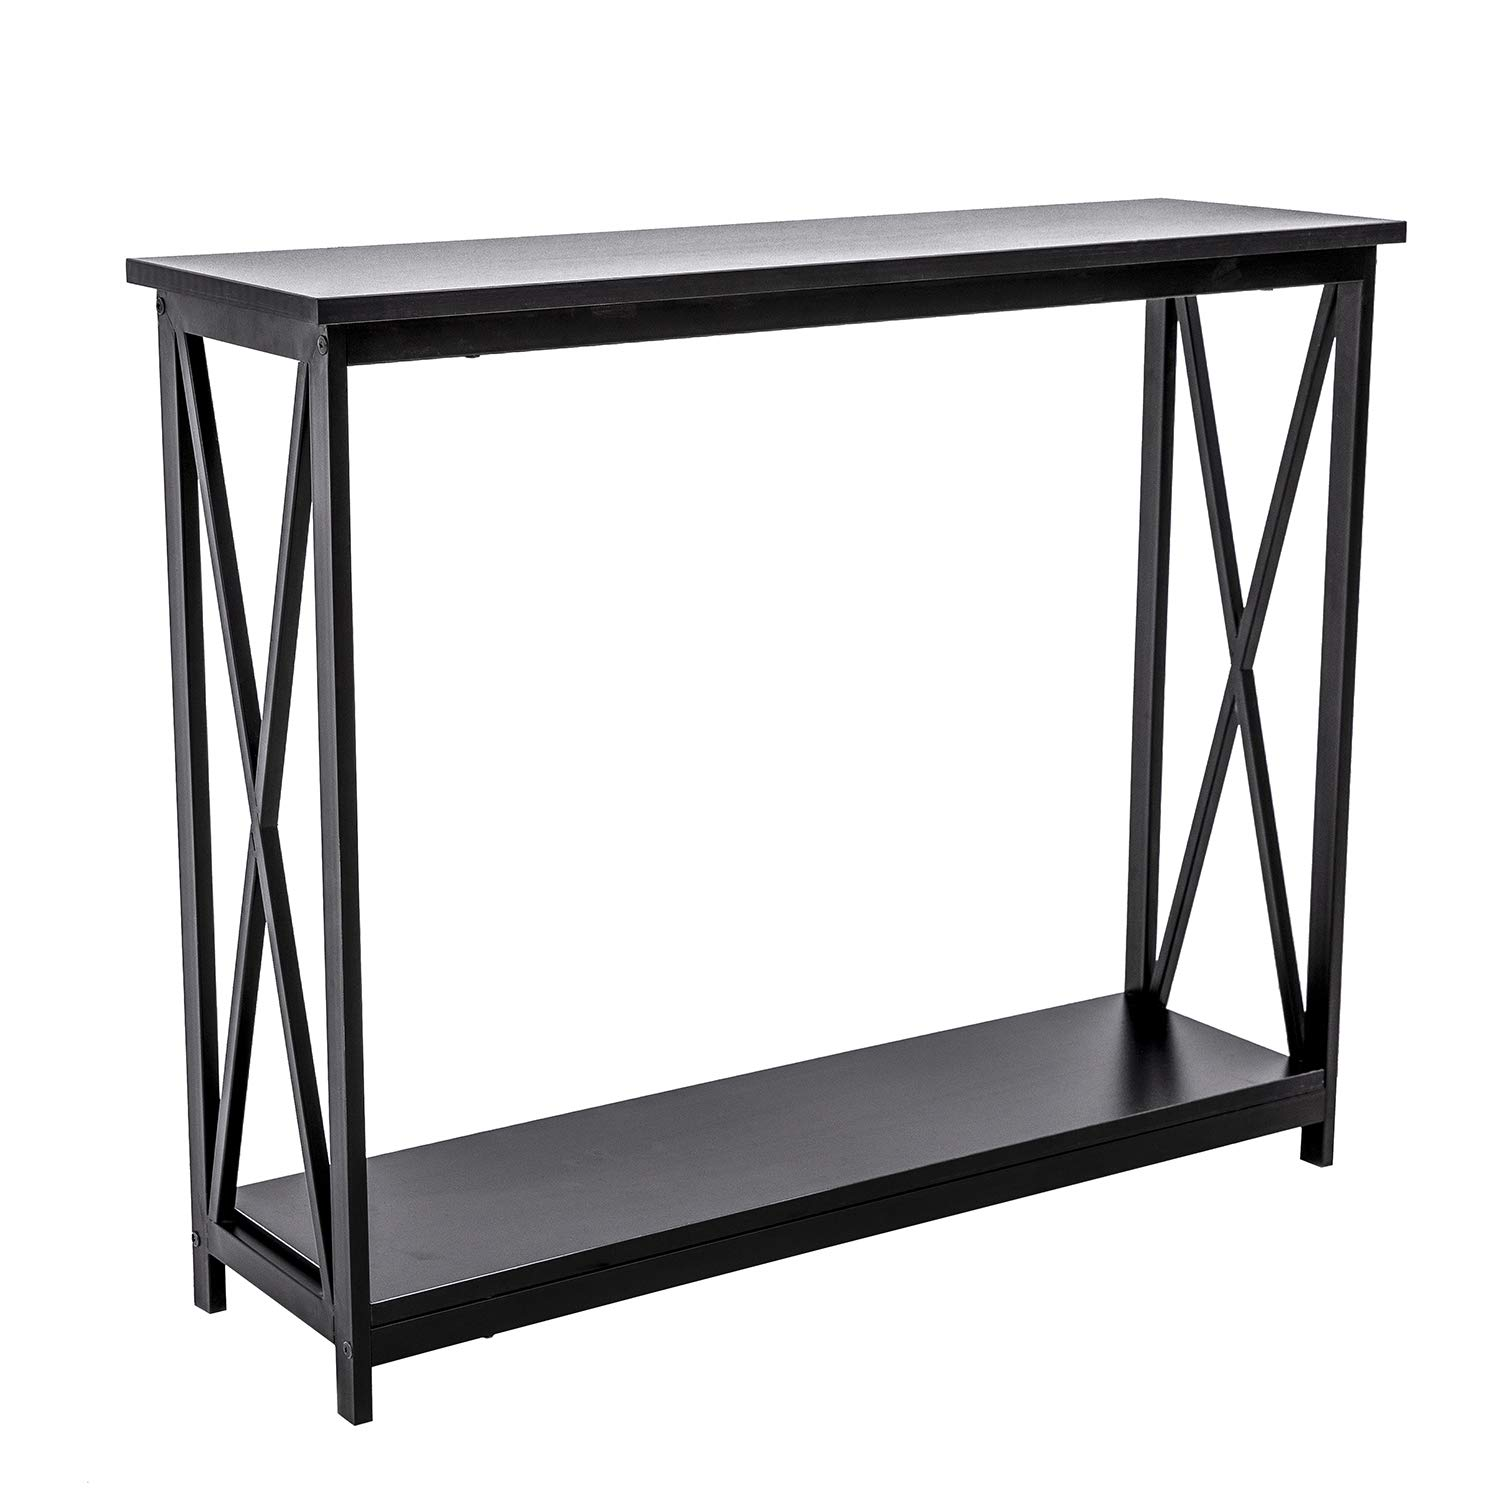 HOFOME Sofa Side Table, 2 Tier Console Table X-Design Entryway Hall Table with Storage, Long Narrow Accent Table for Living Room, Black by HOFOME